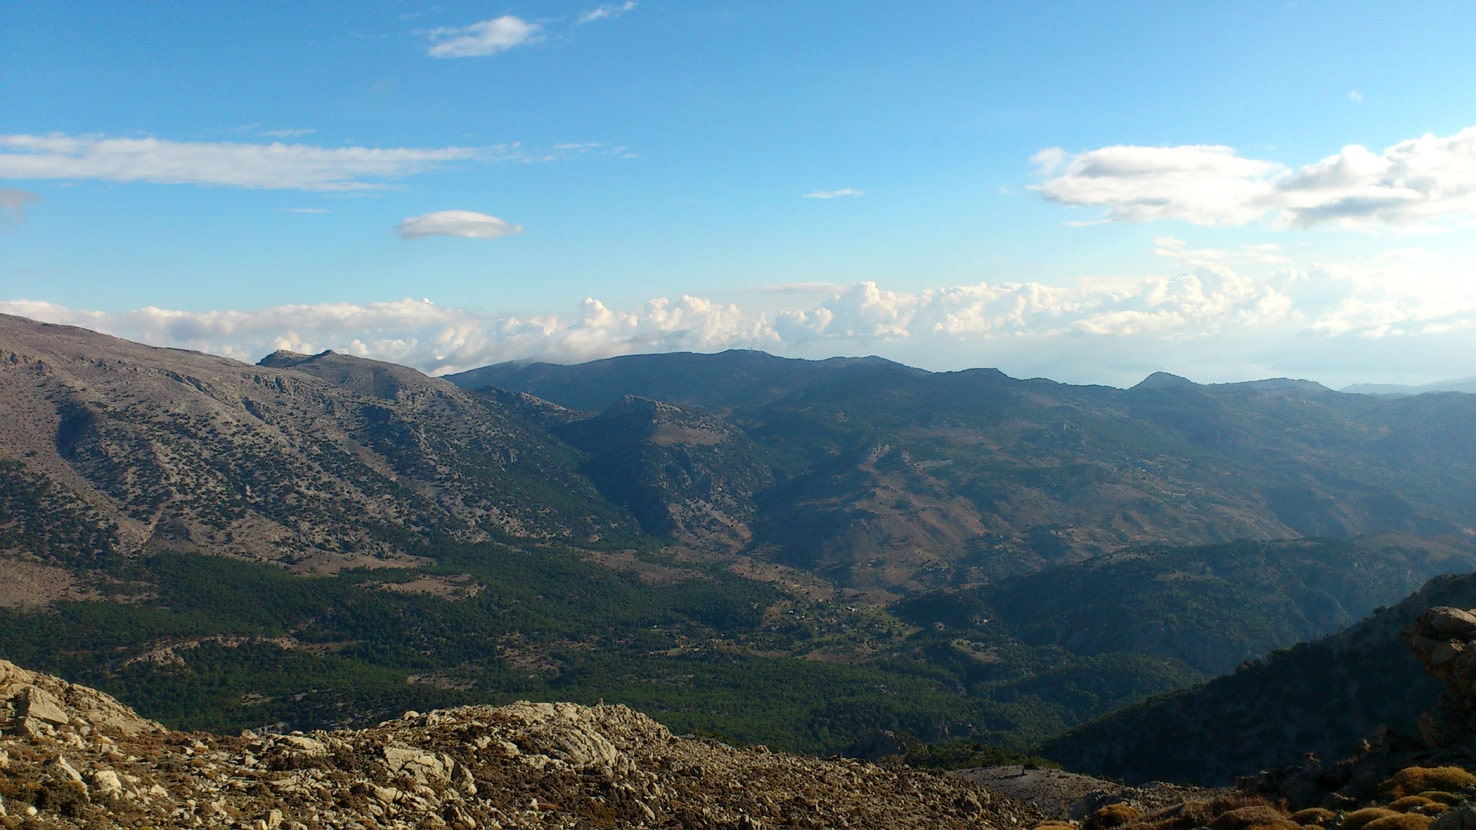 The border between Lasithi and Heraklion on Dikti mountains